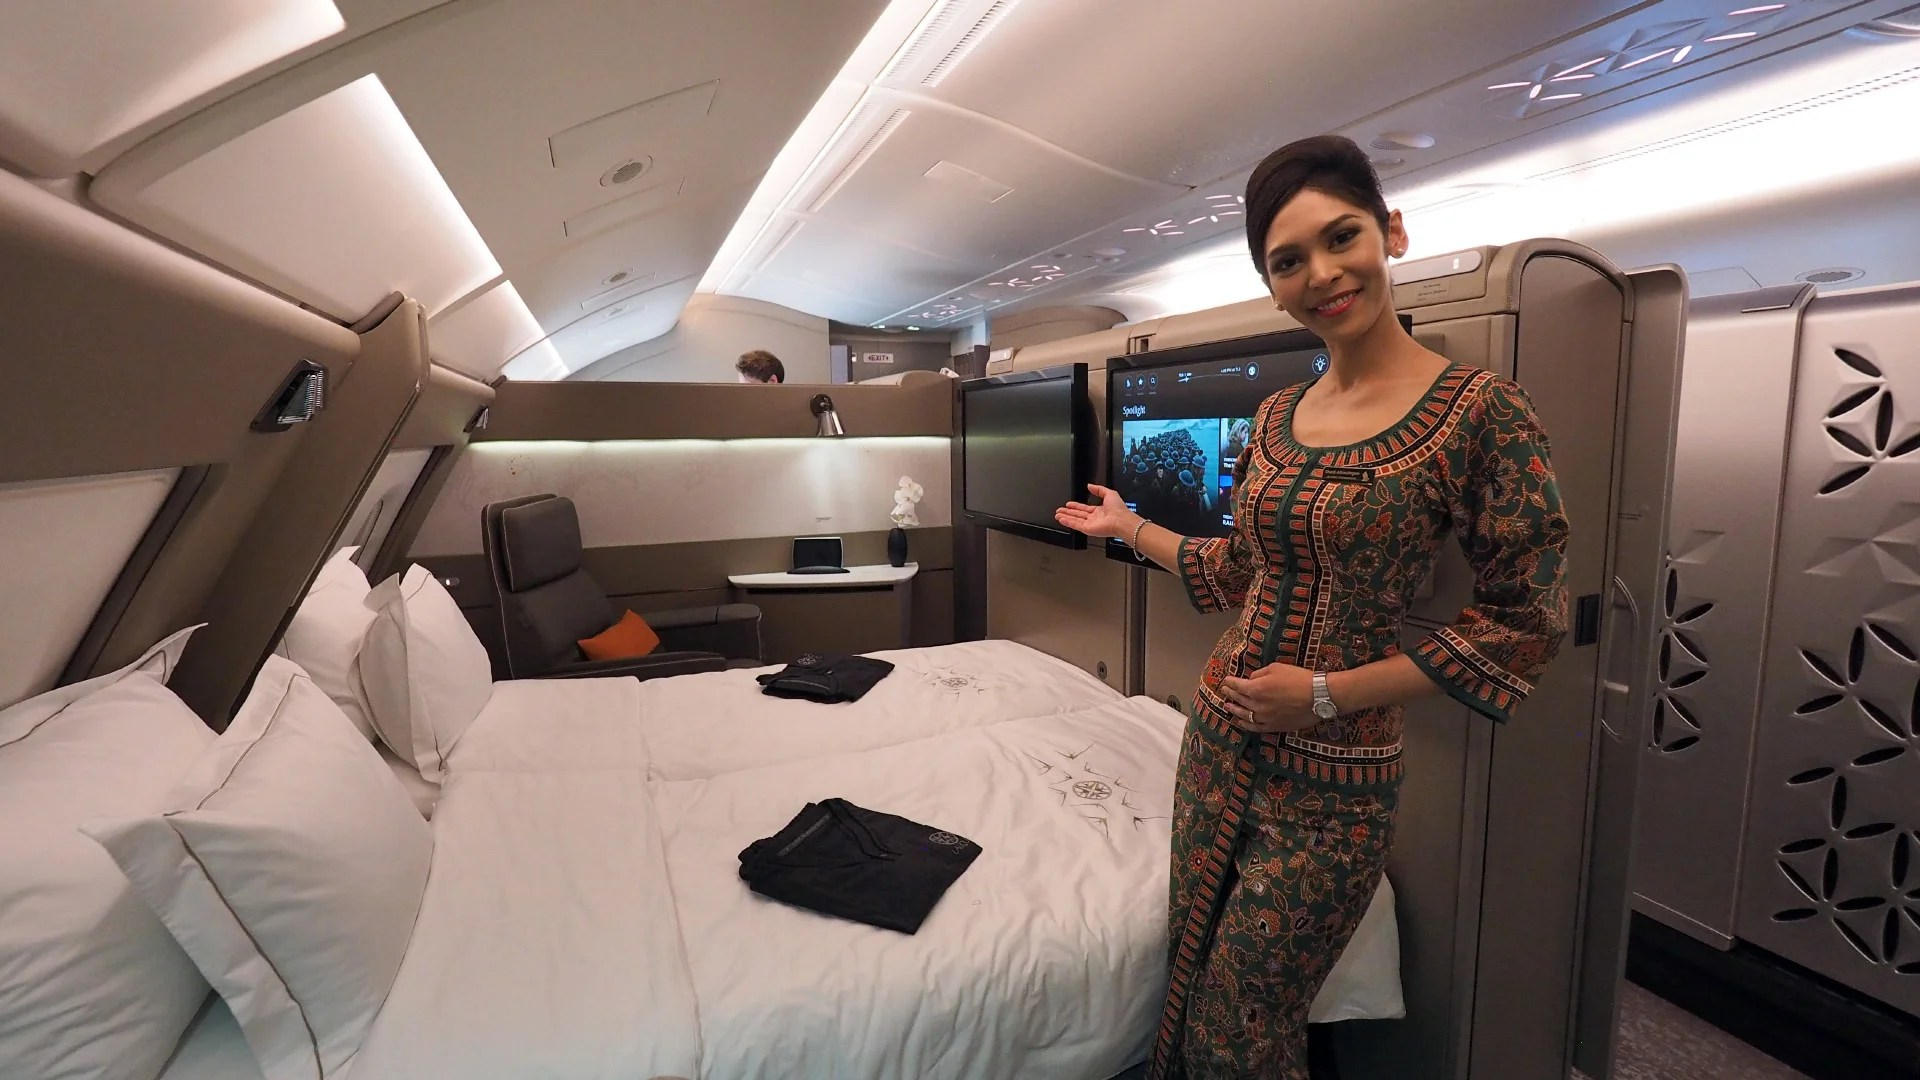 singapore airline first class的圖片搜尋結果